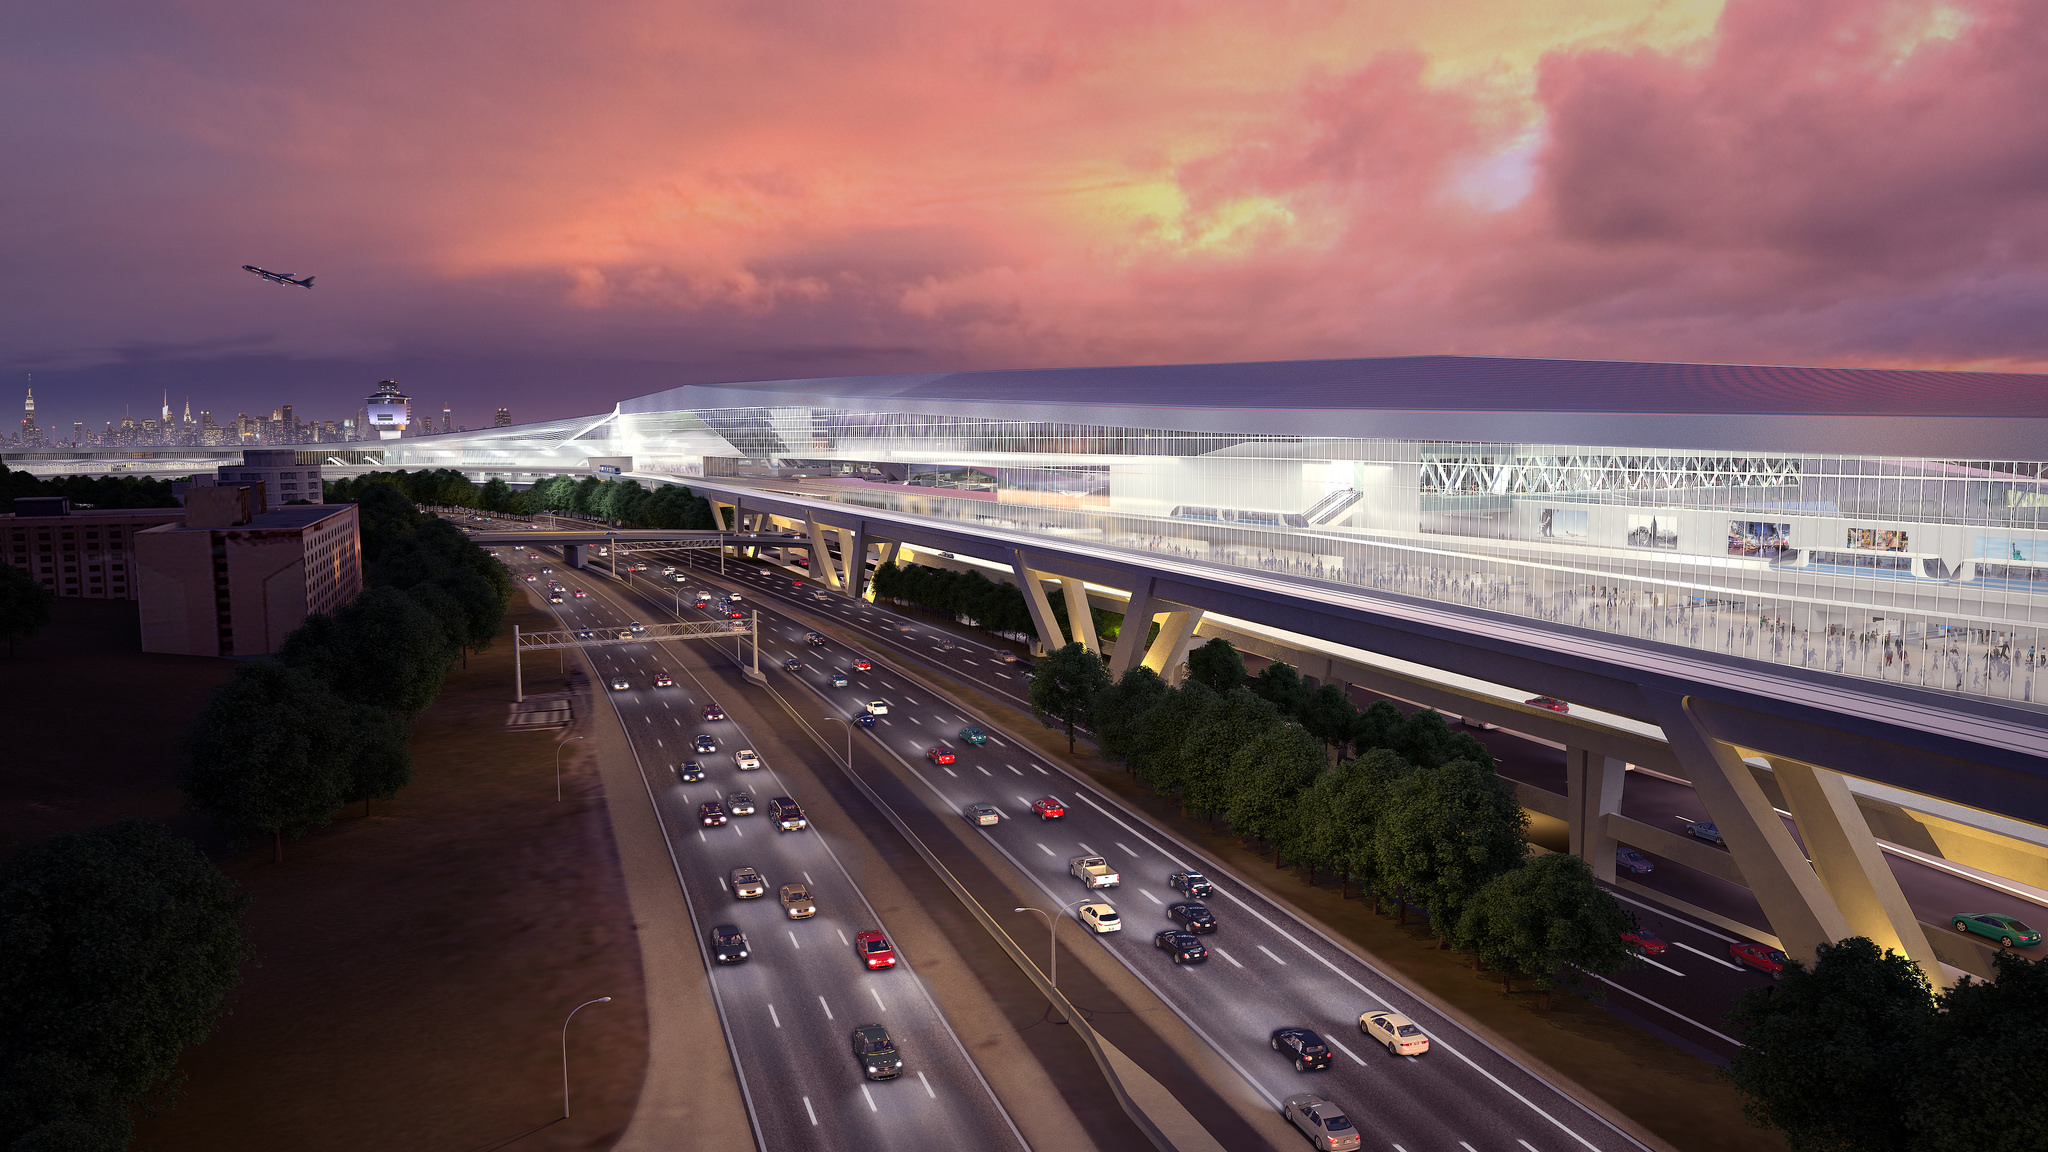 A rendering of the proposed changes to LaGuardia Airport via Governor Andrew Cuomo's Office